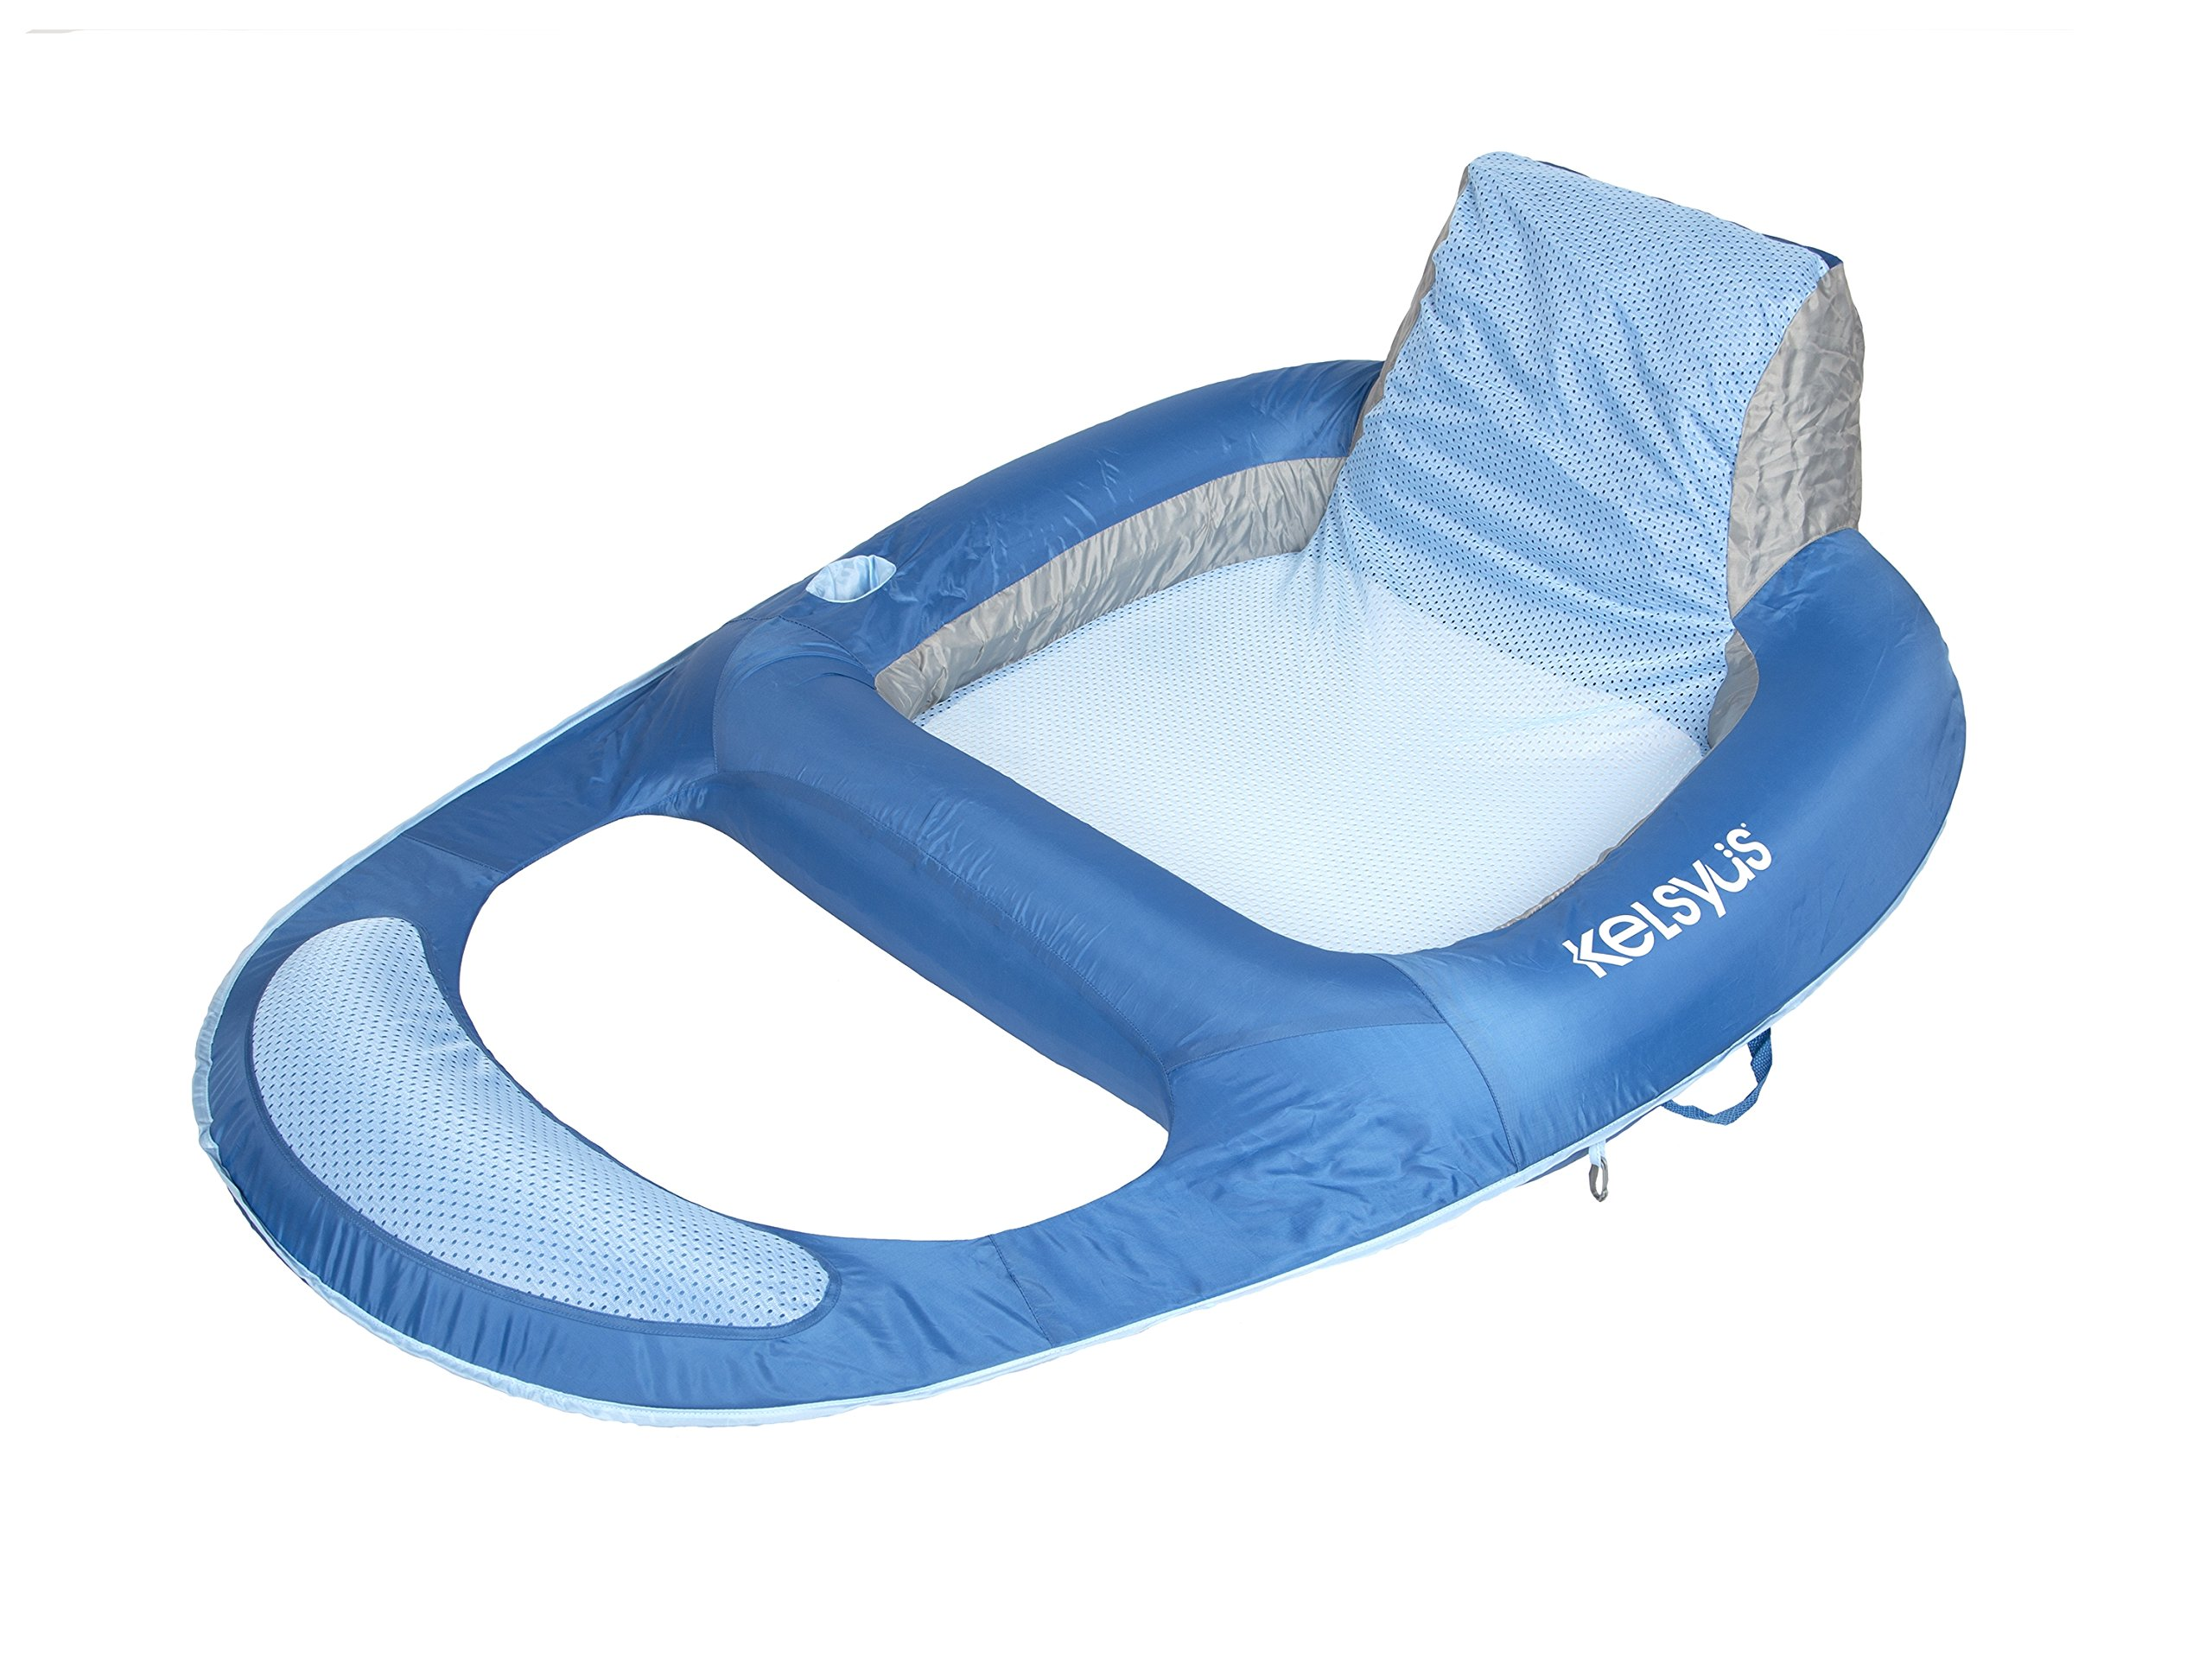 Kelsyus Floating Lounger Pool Float by Kelsyus